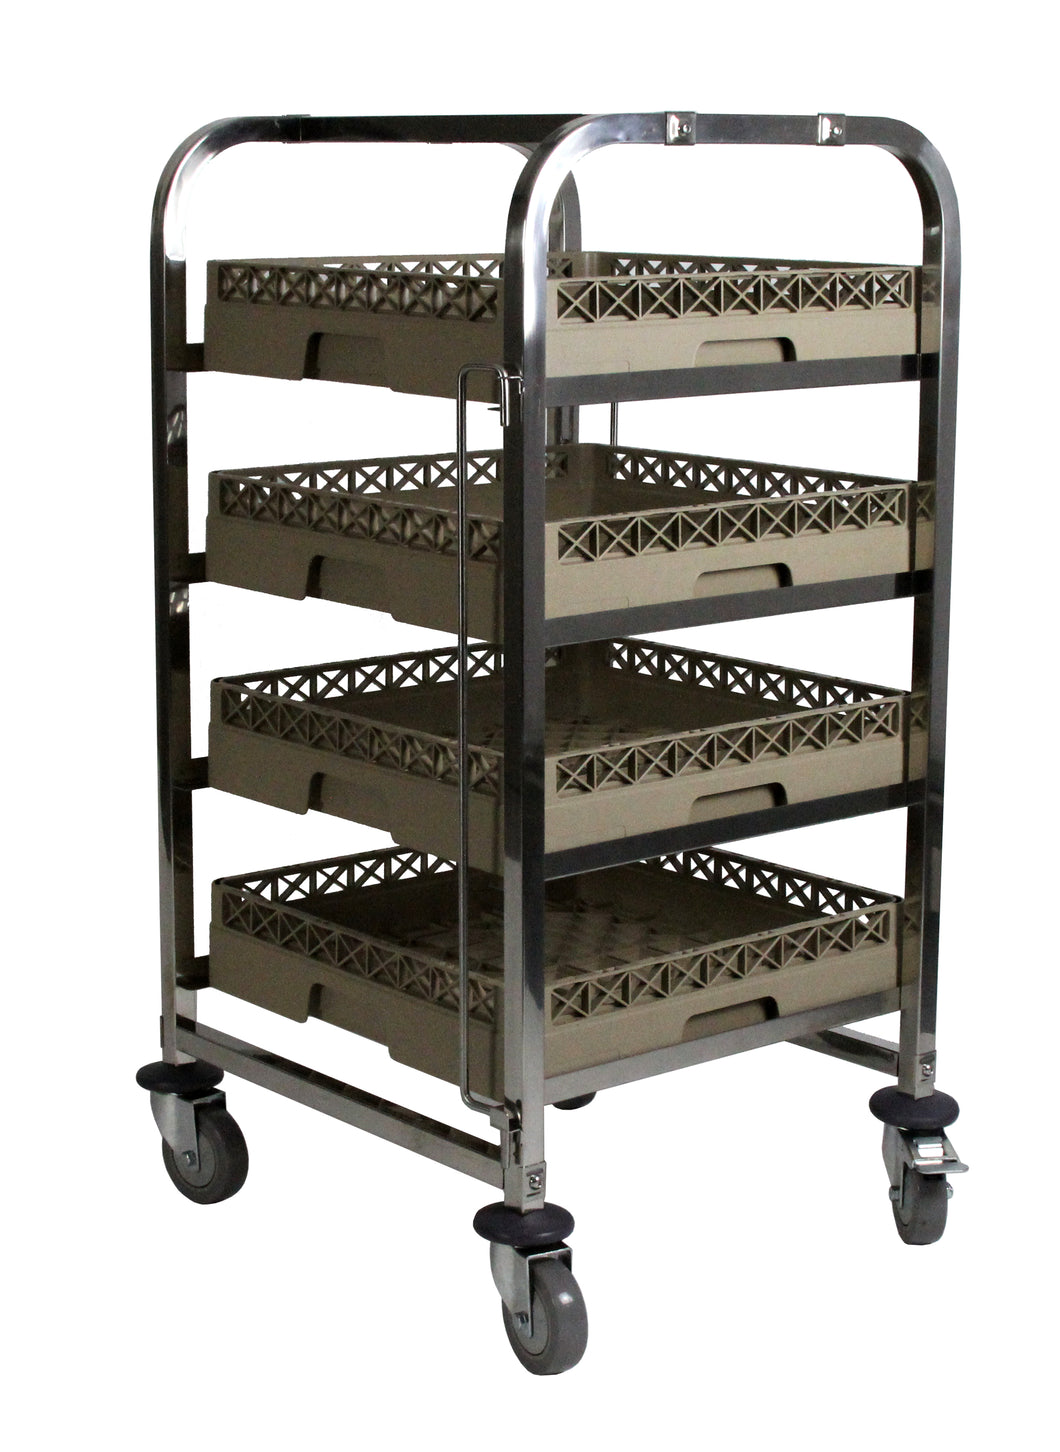 4 Level Dishwasher Trolley